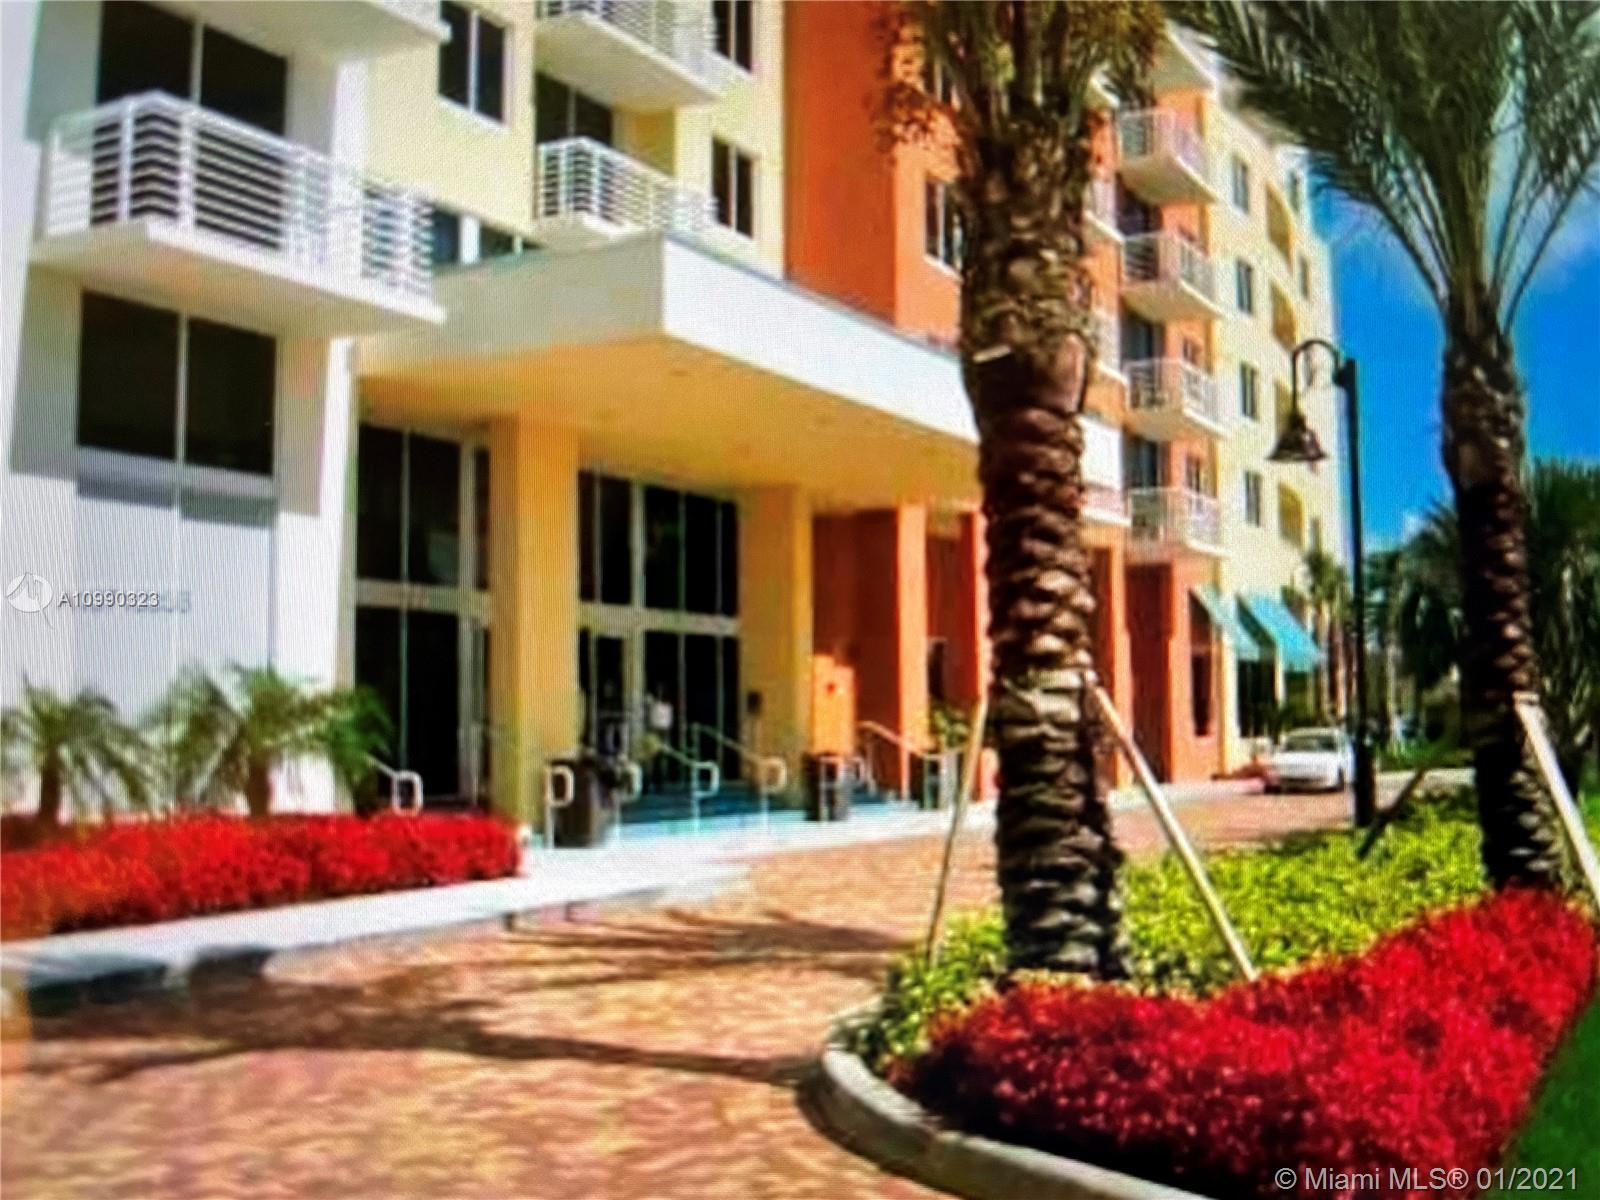 Venture One #510 - 18800 NE 29th Ave #510, Aventura, FL 33180